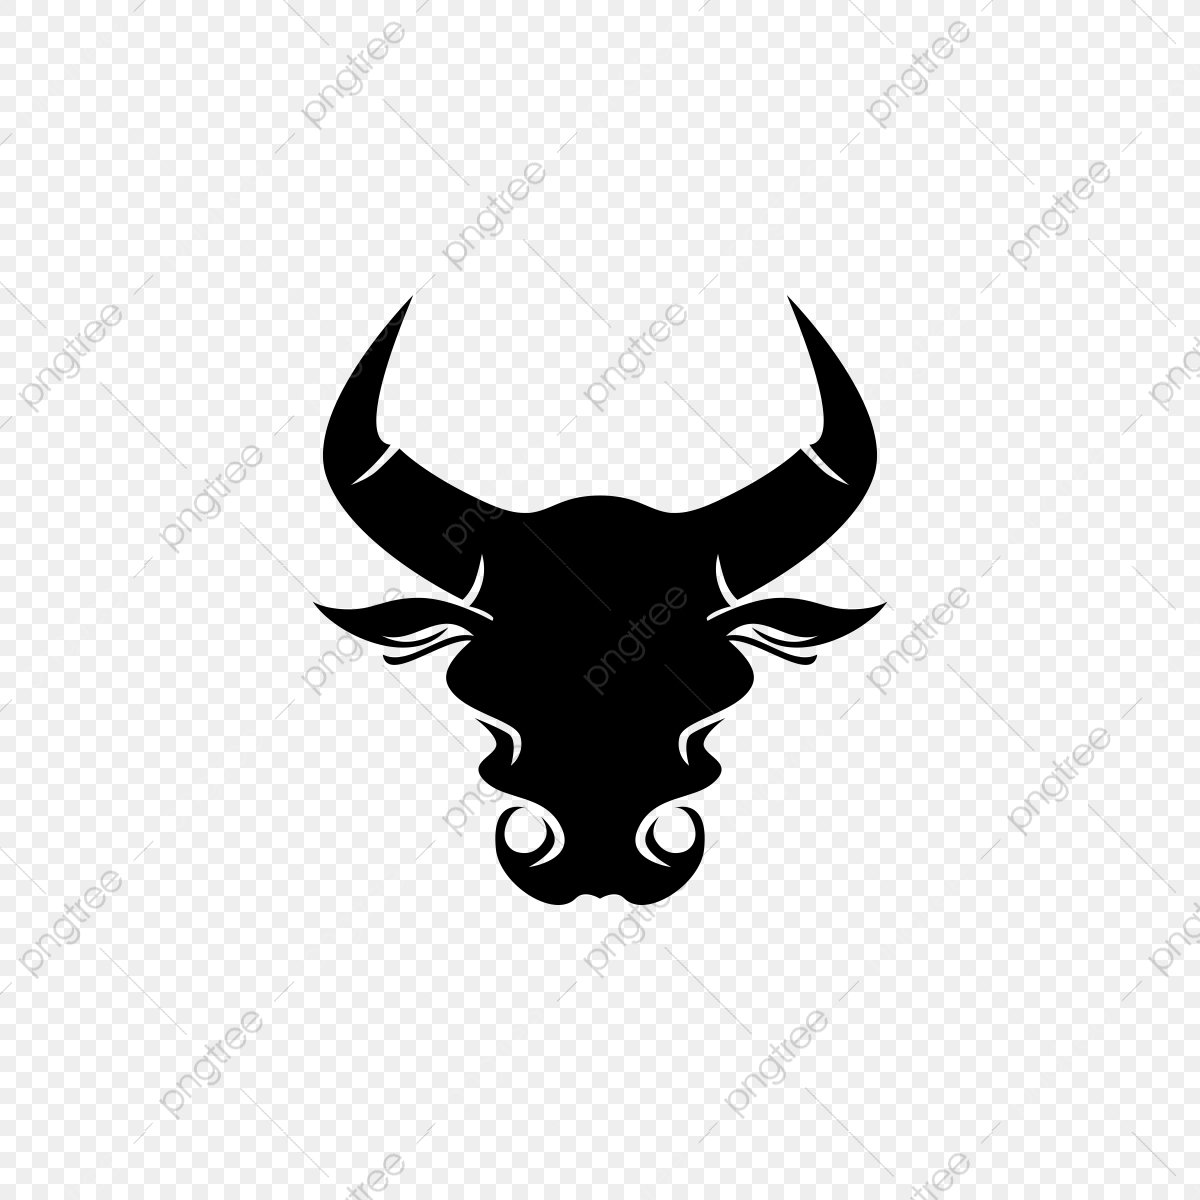 black bull head logo logo icons black icons head icons png and vector with transparent background for free download https pngtree com freepng black bull head logo 4309012 html